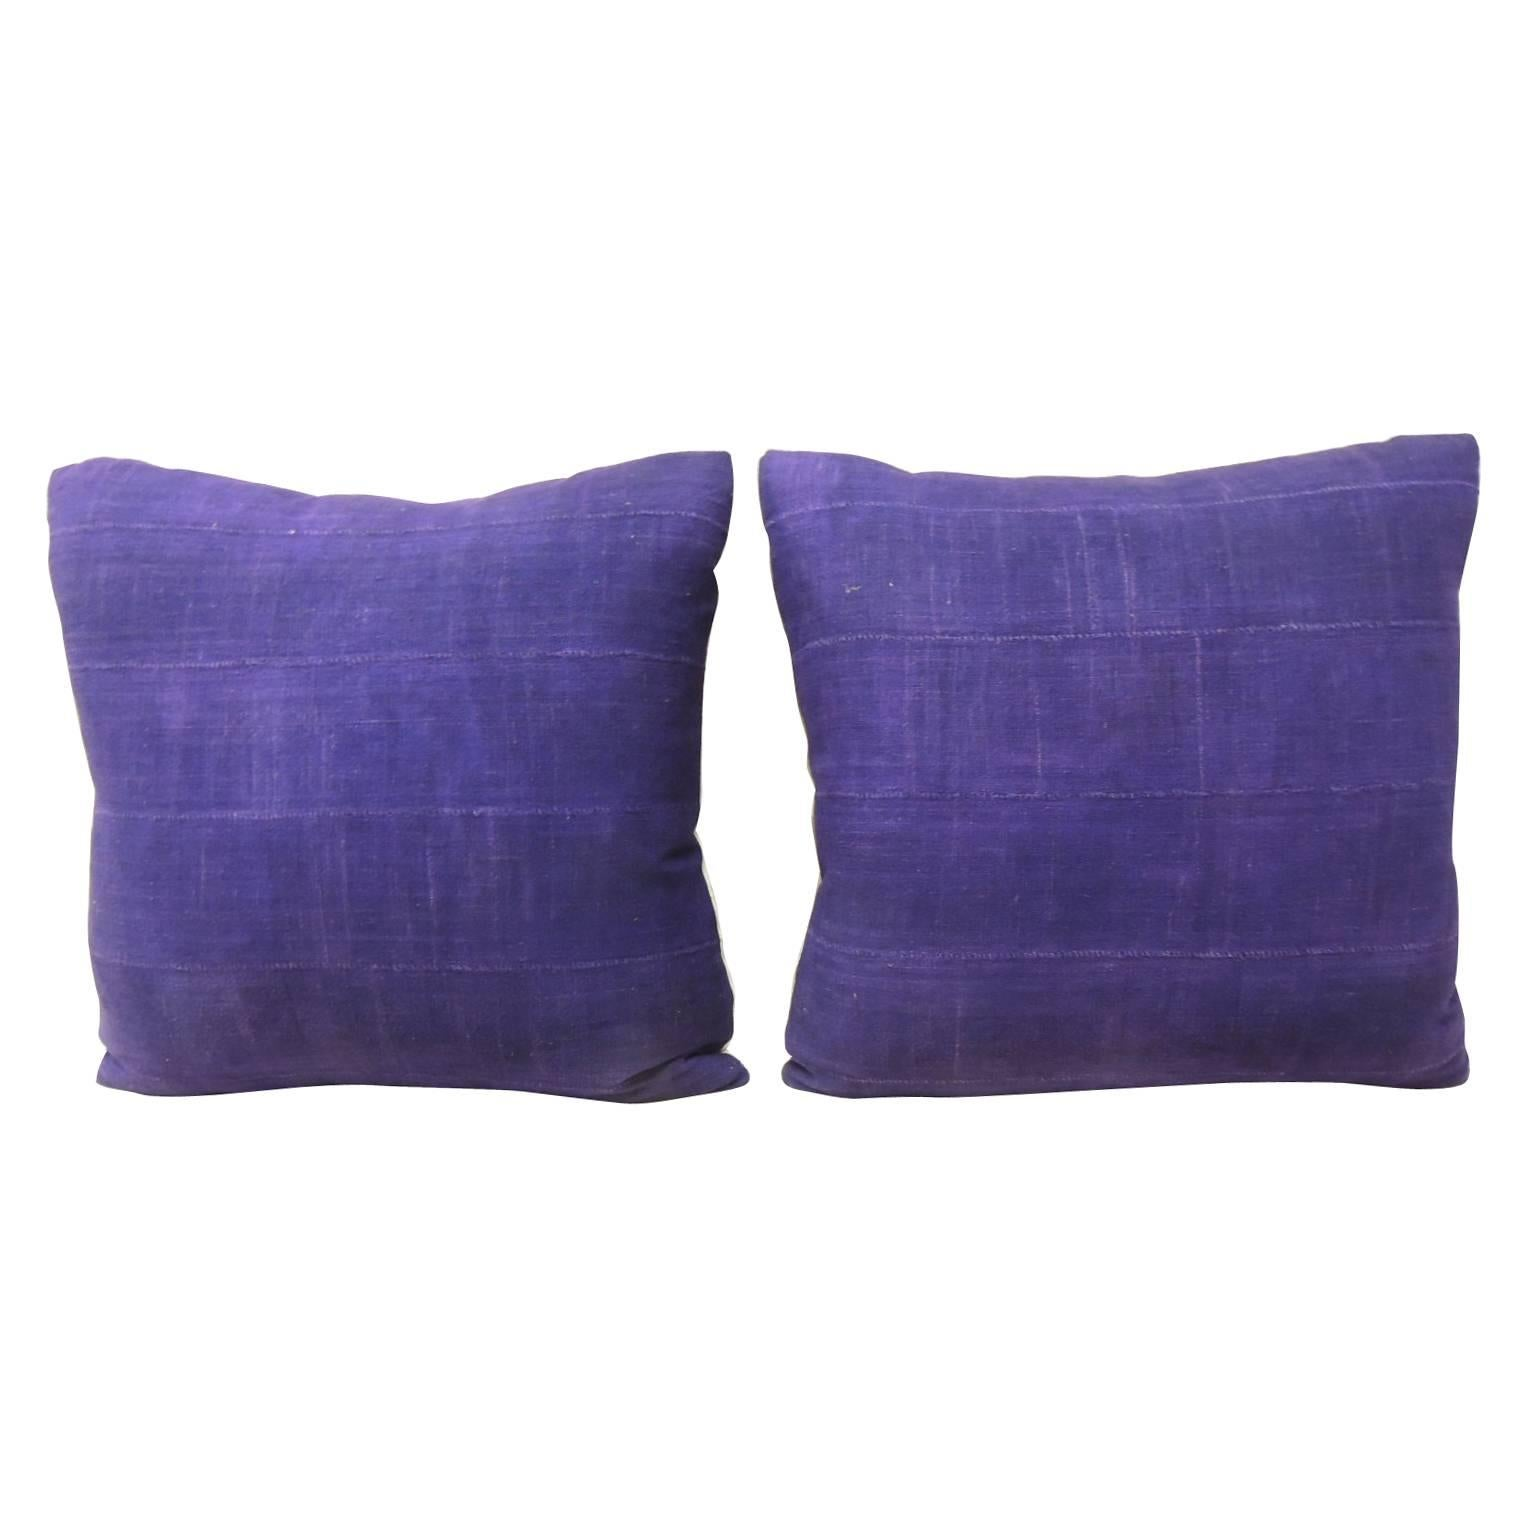 Pair of Vintage Deep Purple Woven Mud Cloth African Decorative Pillows